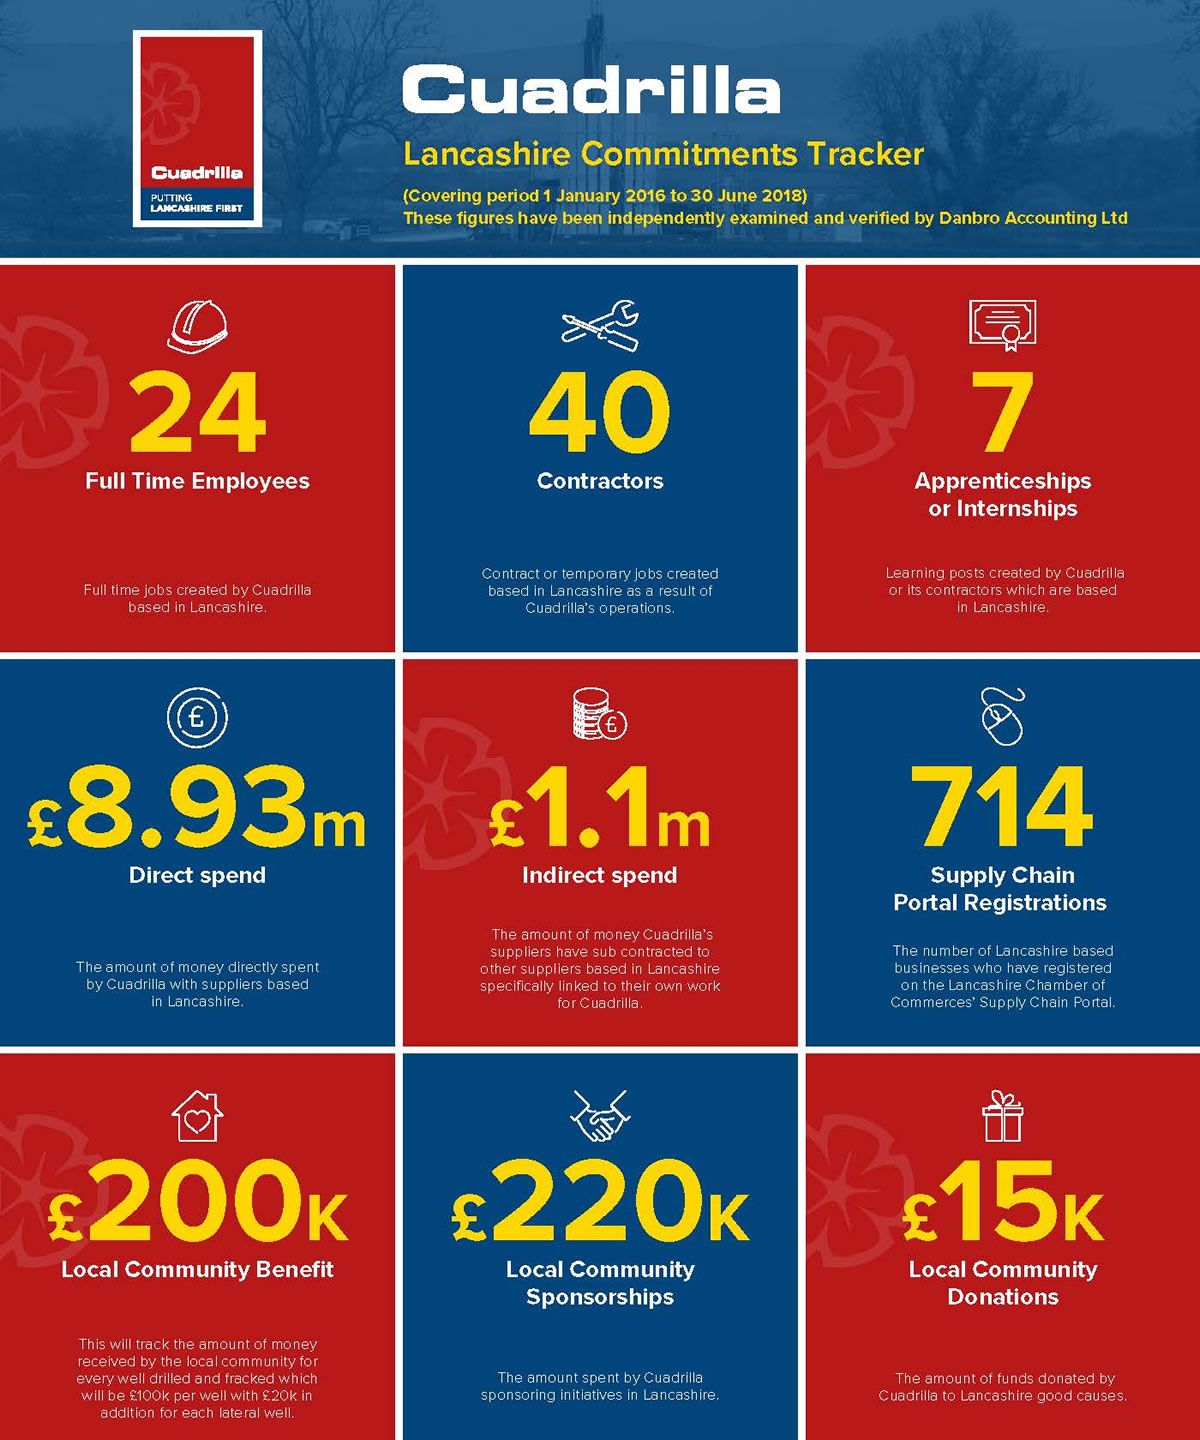 Cuadrilla - Lancashire Commitments Tracker - Covering period 1 January 2016 to 30 June 2018